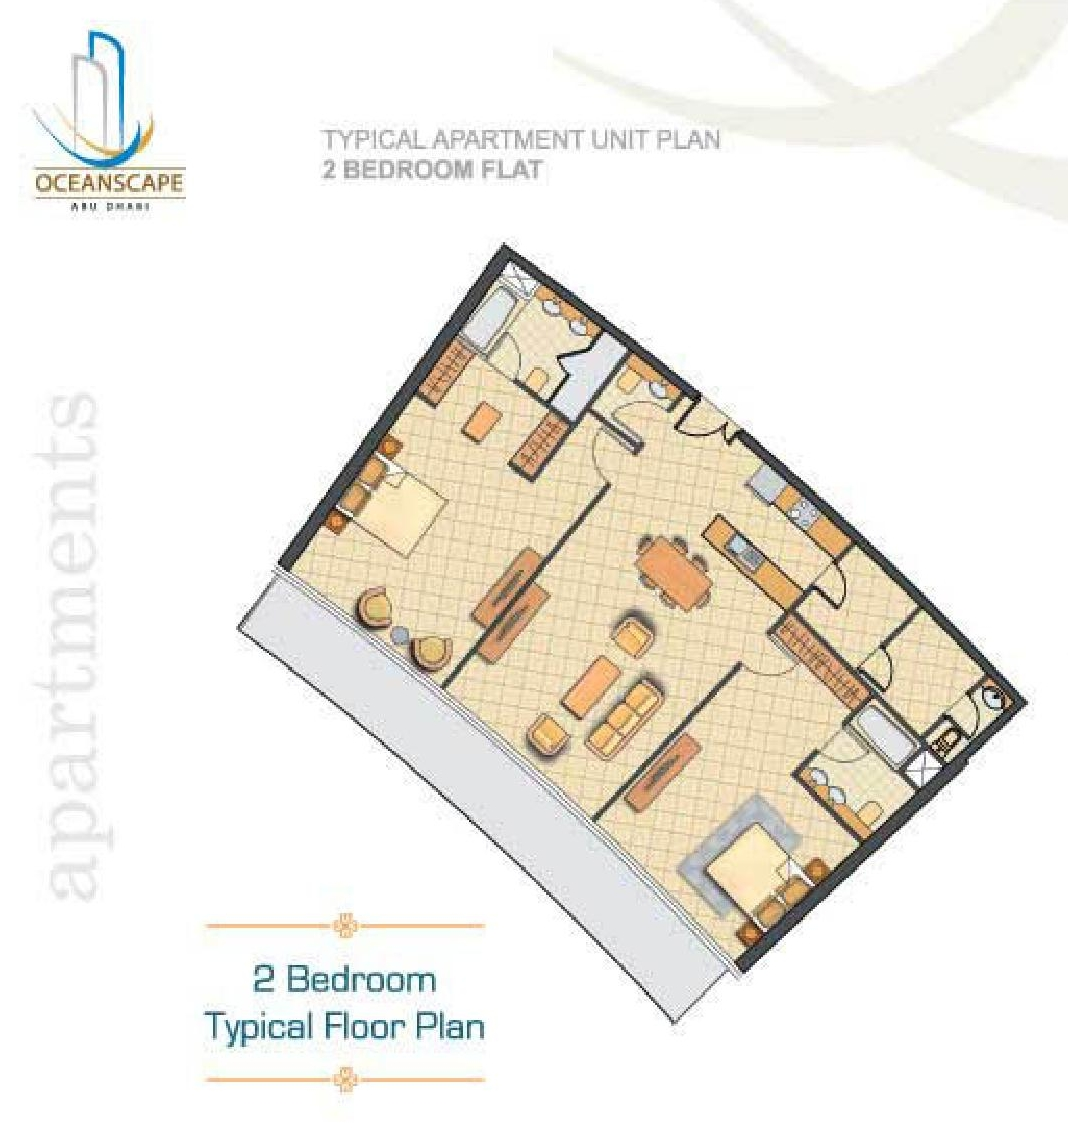 Oceanscape floor plans al shams abu dhabi for Floor 2 swordburst 2